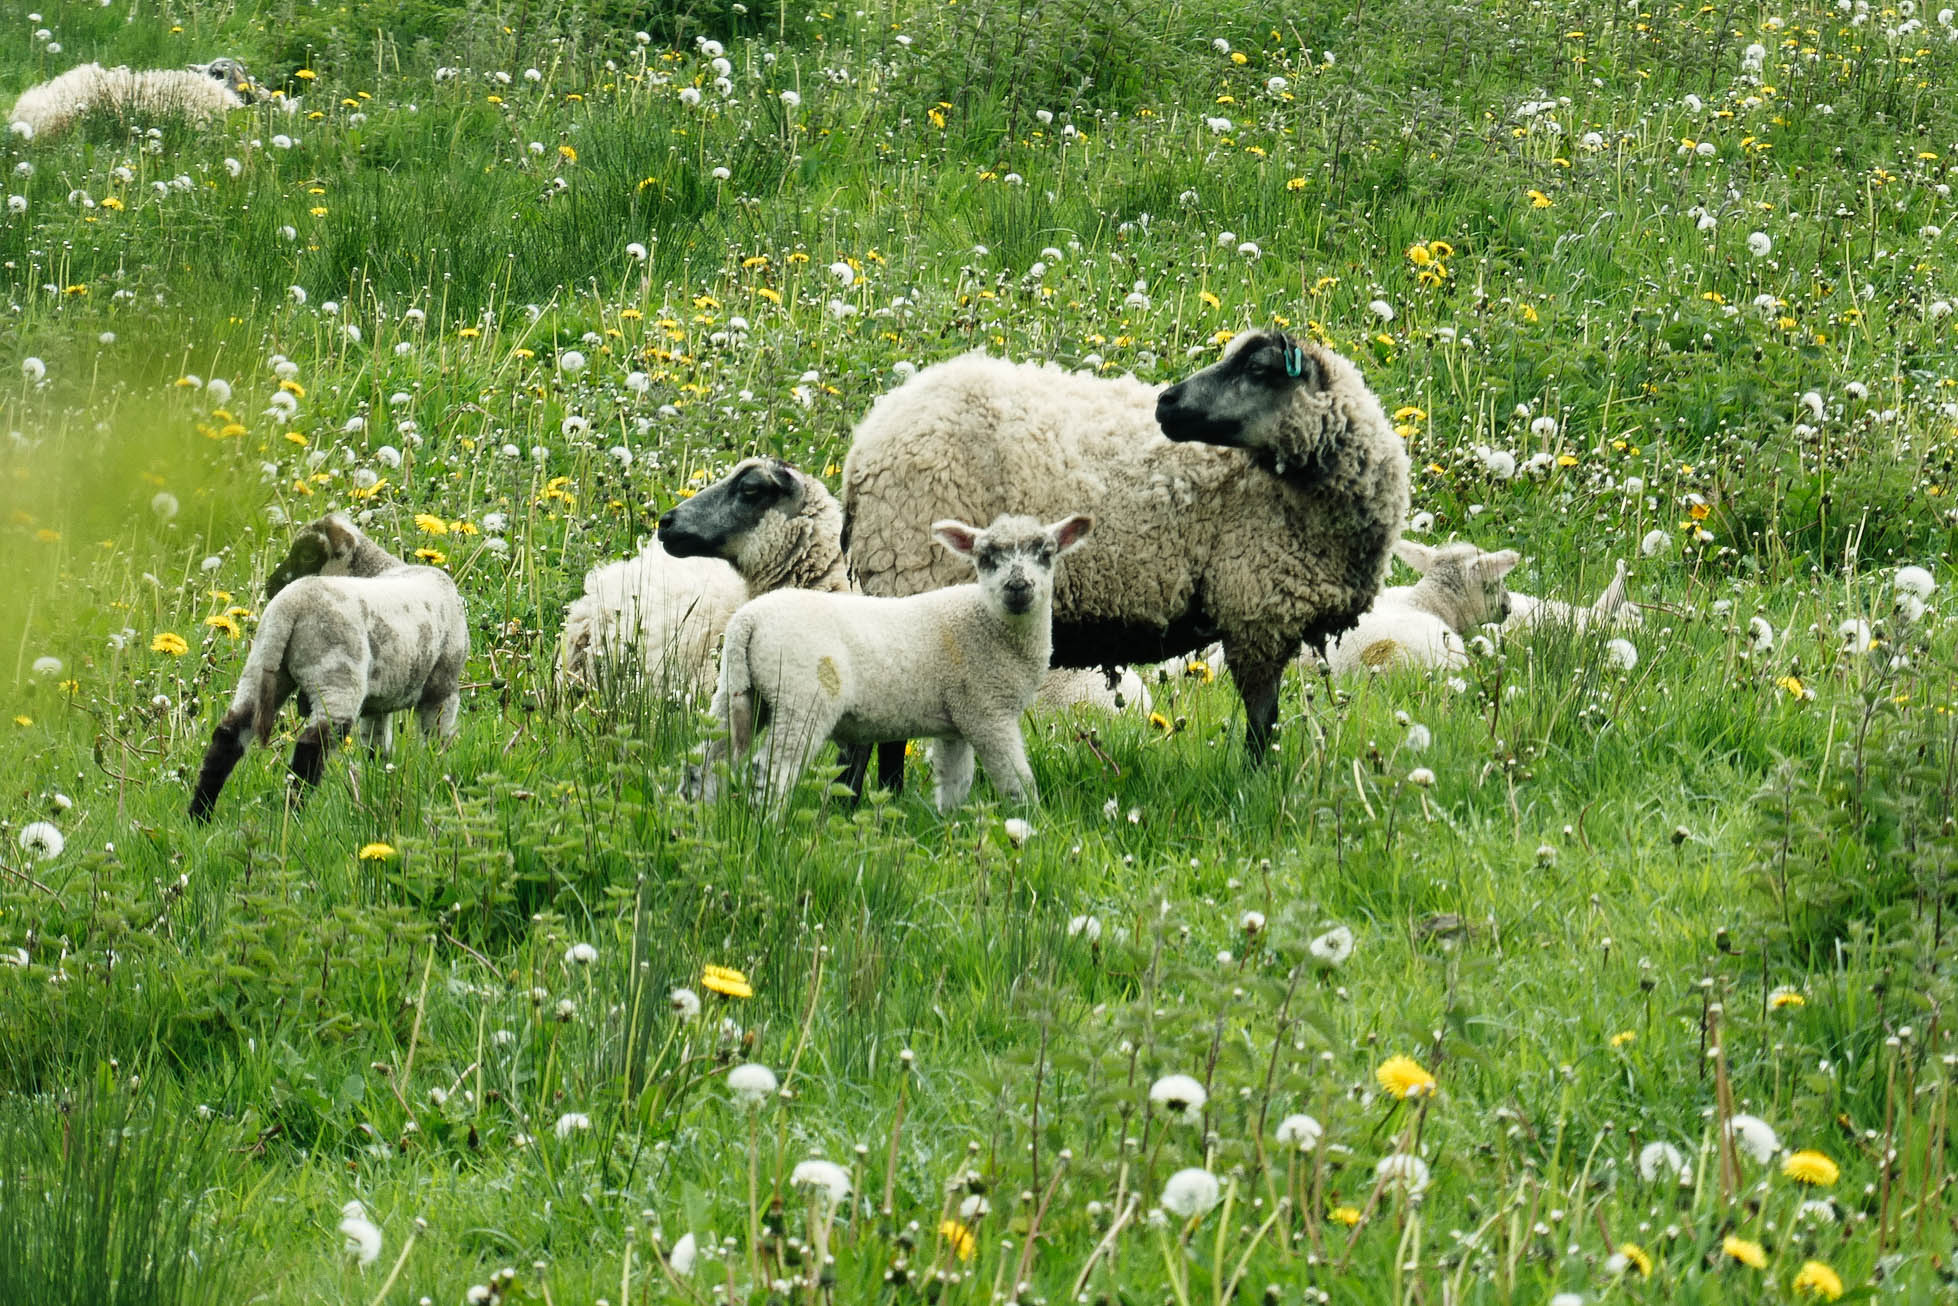 Ah my little lambs - April is lambing season, the species rich meadow provides a perfect nursery and lunch.